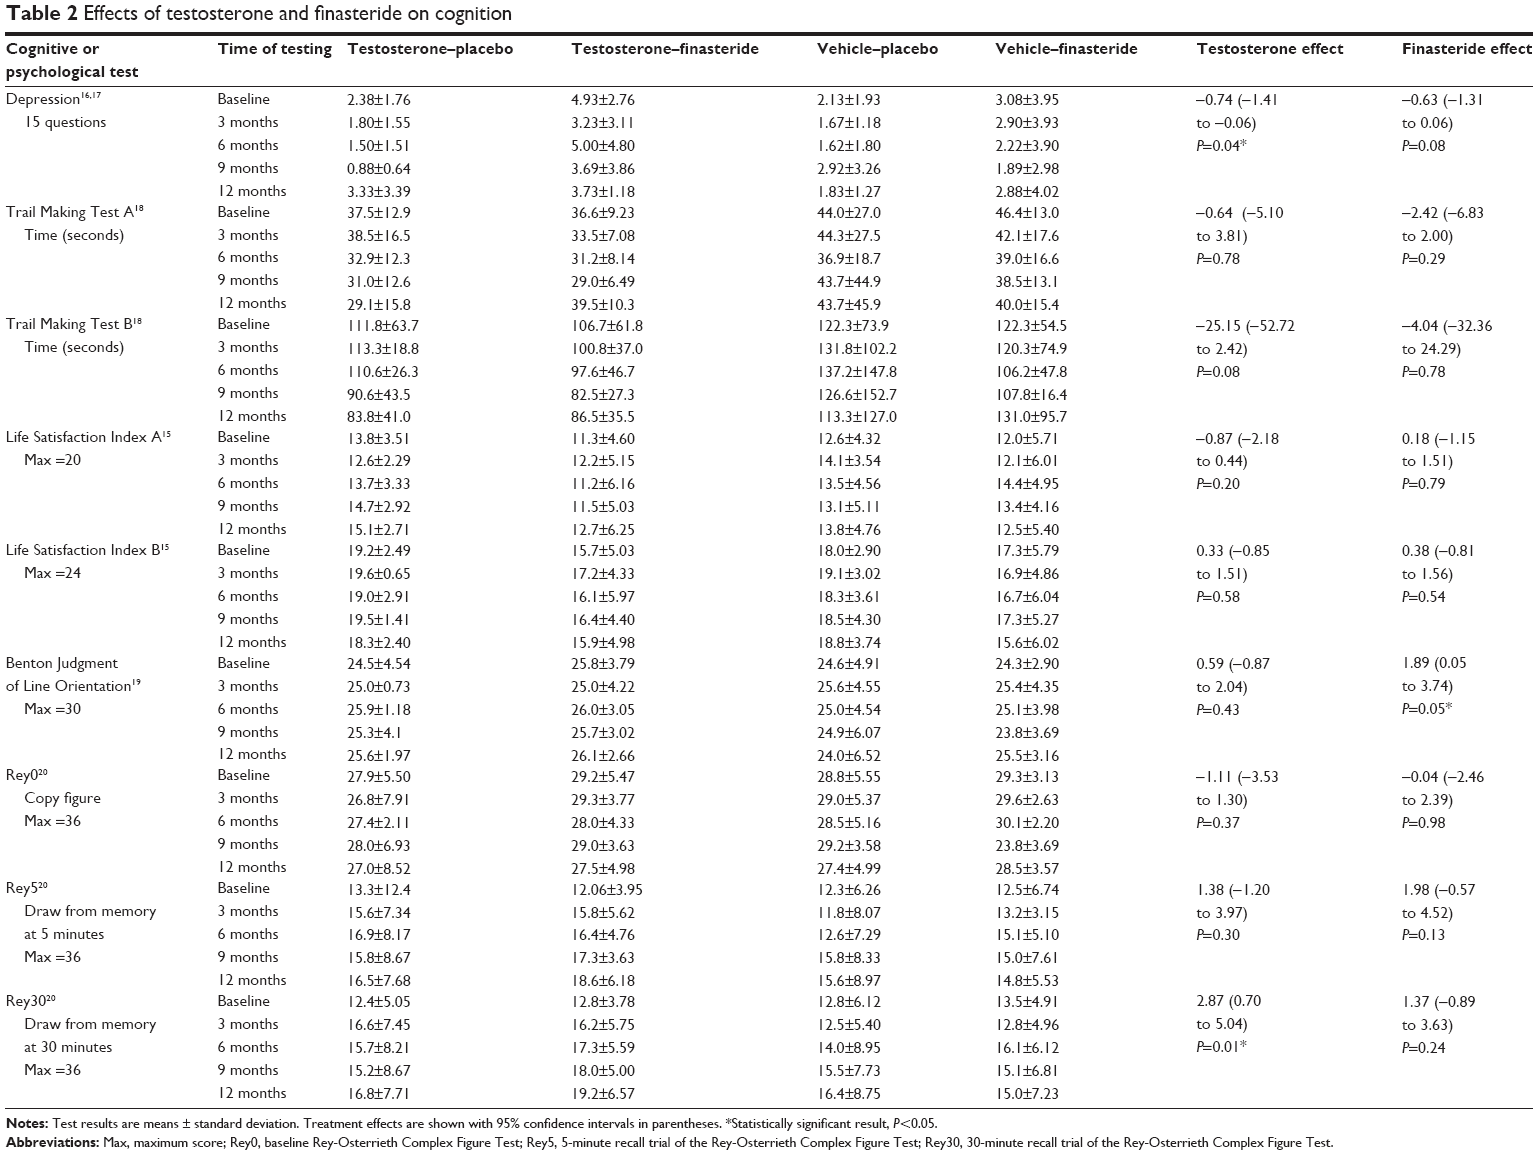 Full text] Cognitive effects of testosterone and finasteride